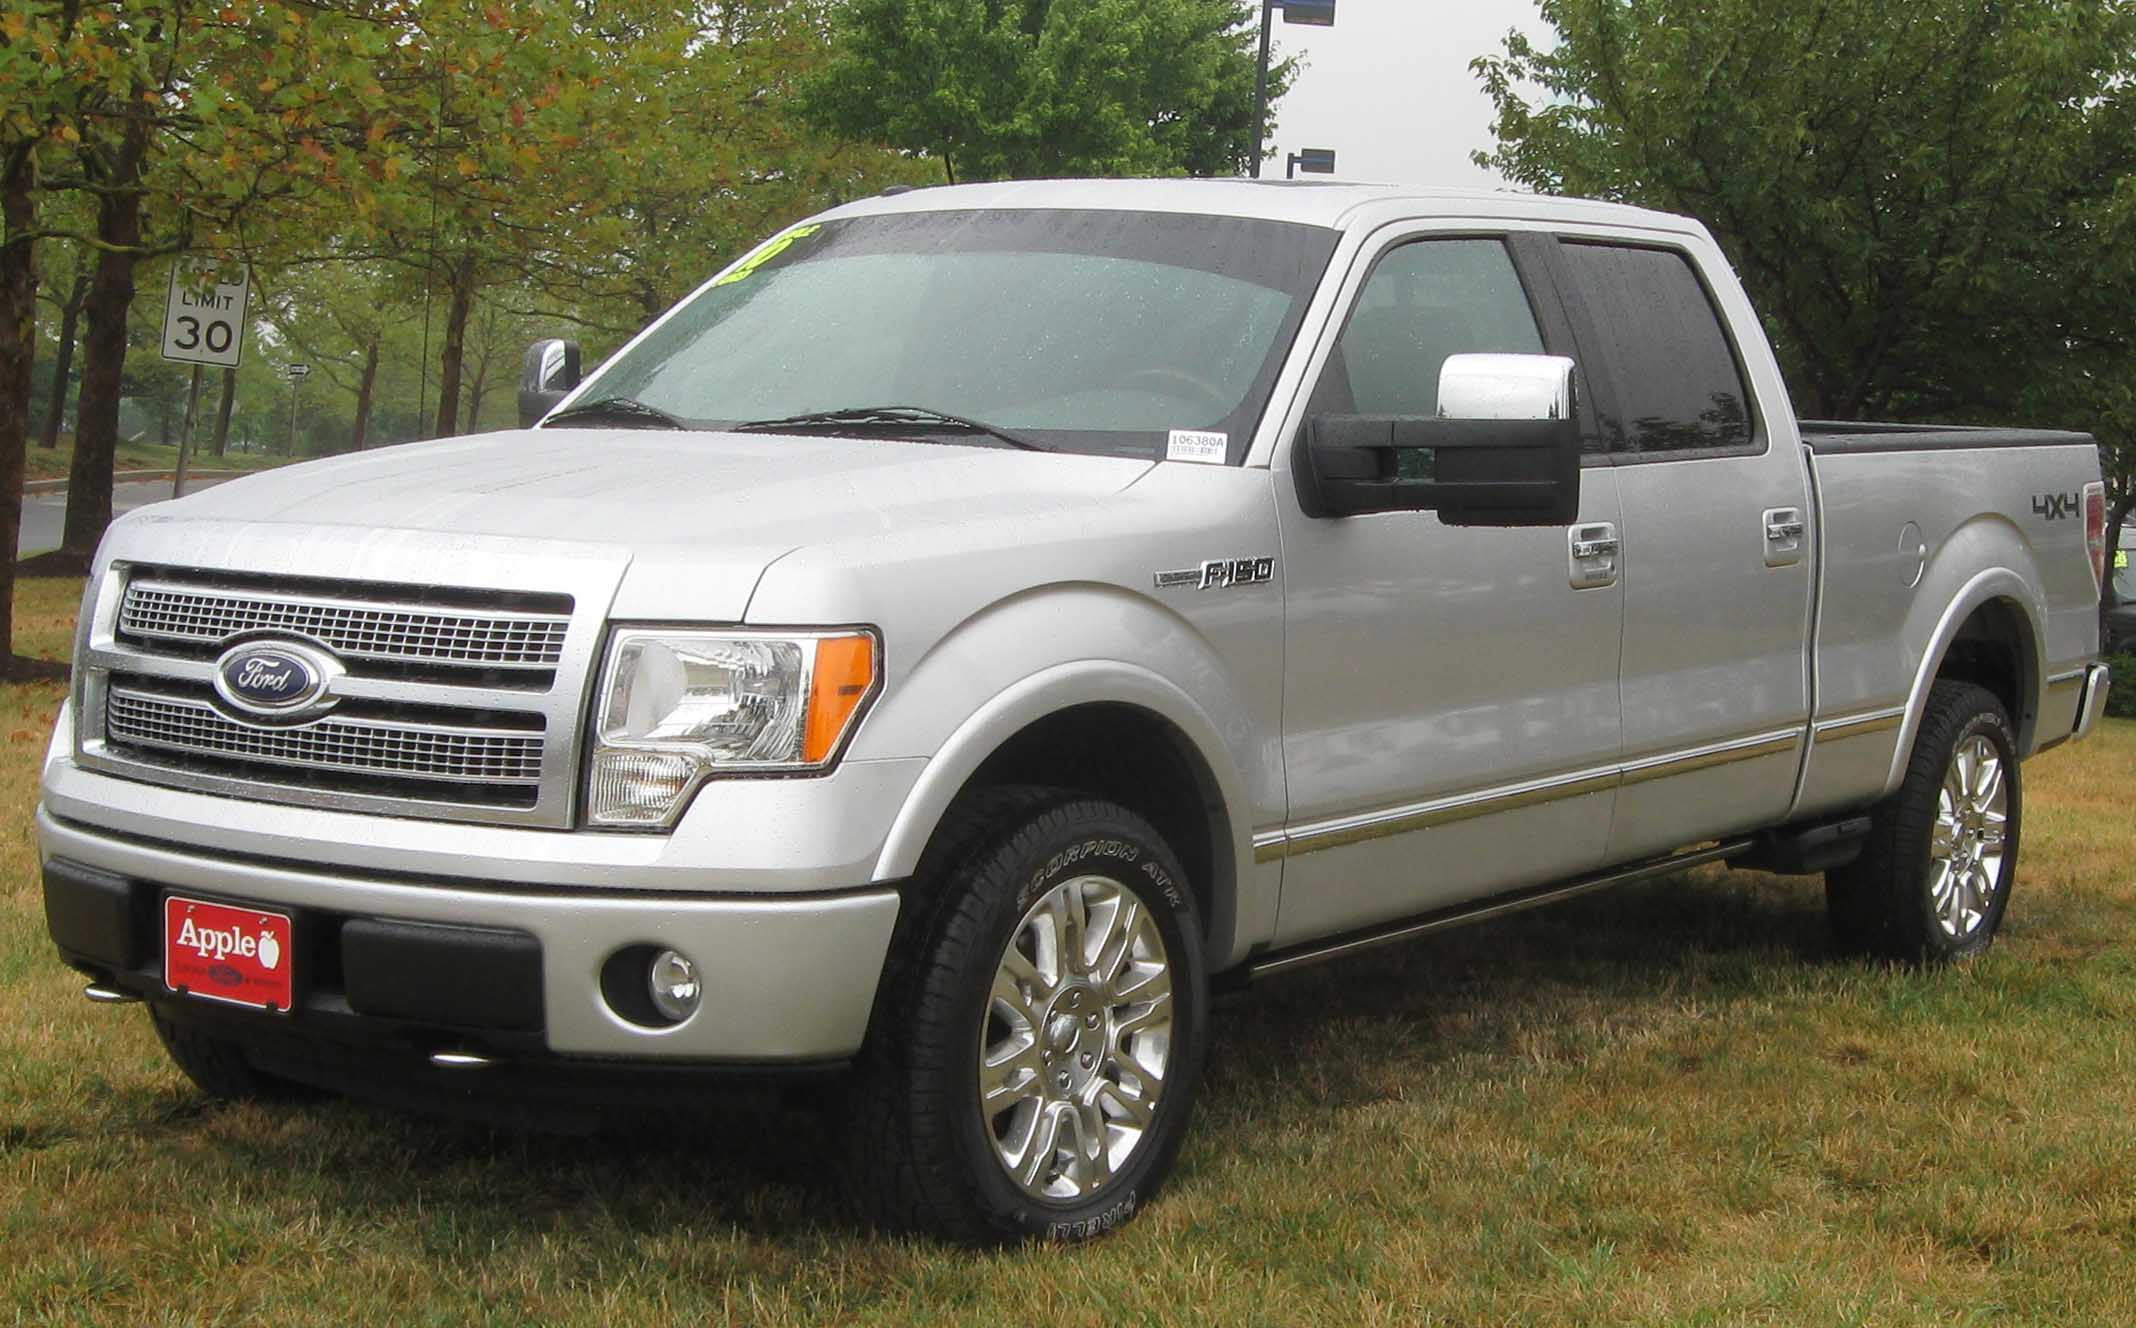 Ford f-150 photo - 2